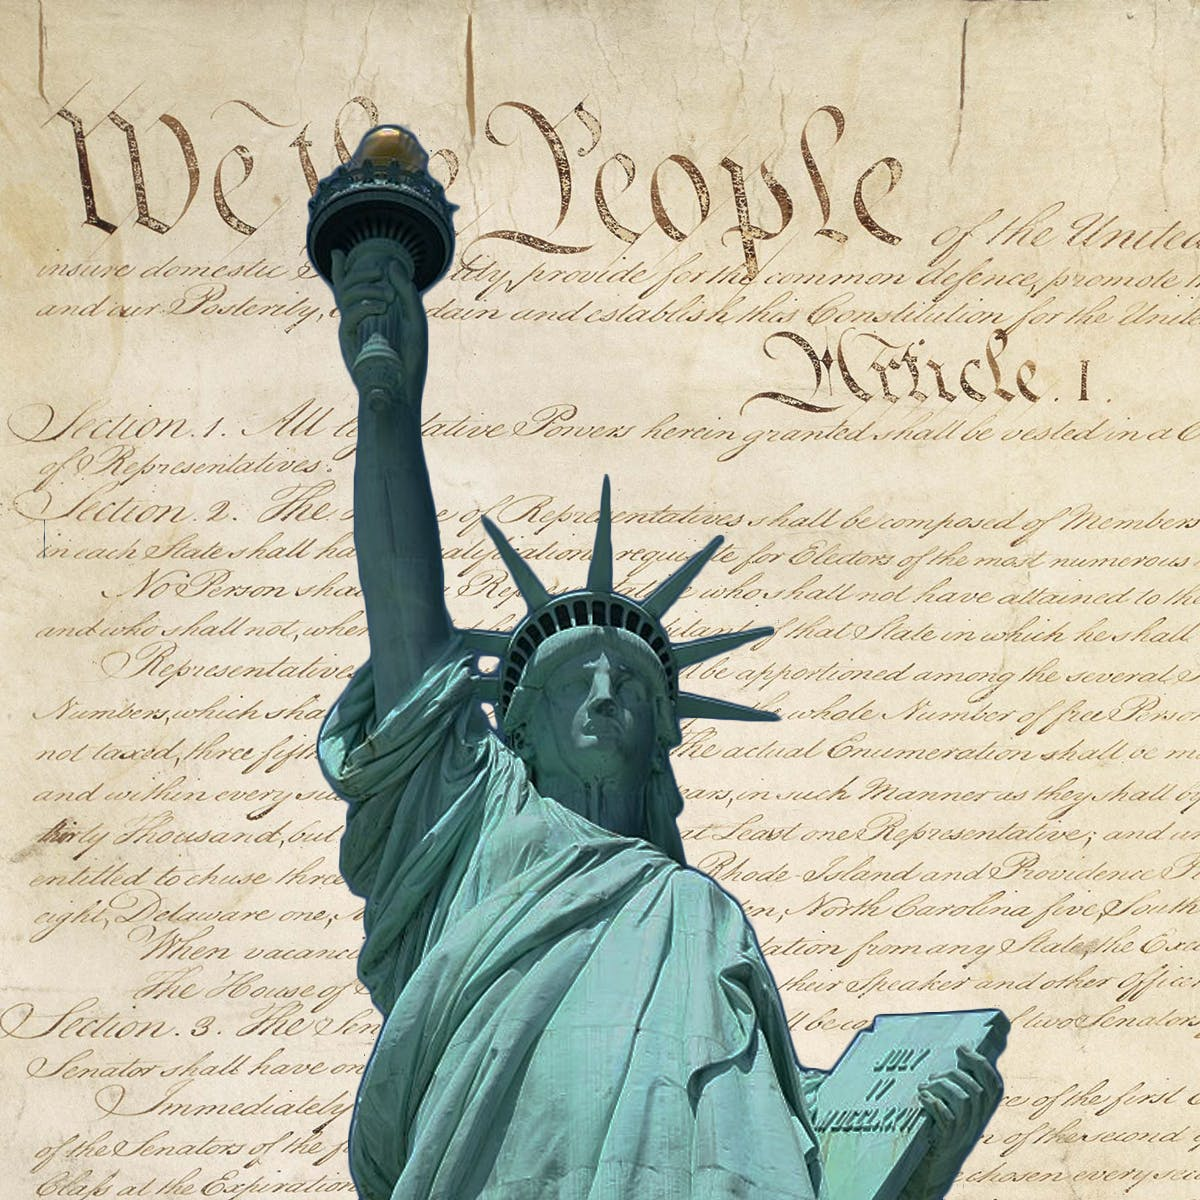 Chemerinsky on Constitutional Law – Individual Rights and Liberties